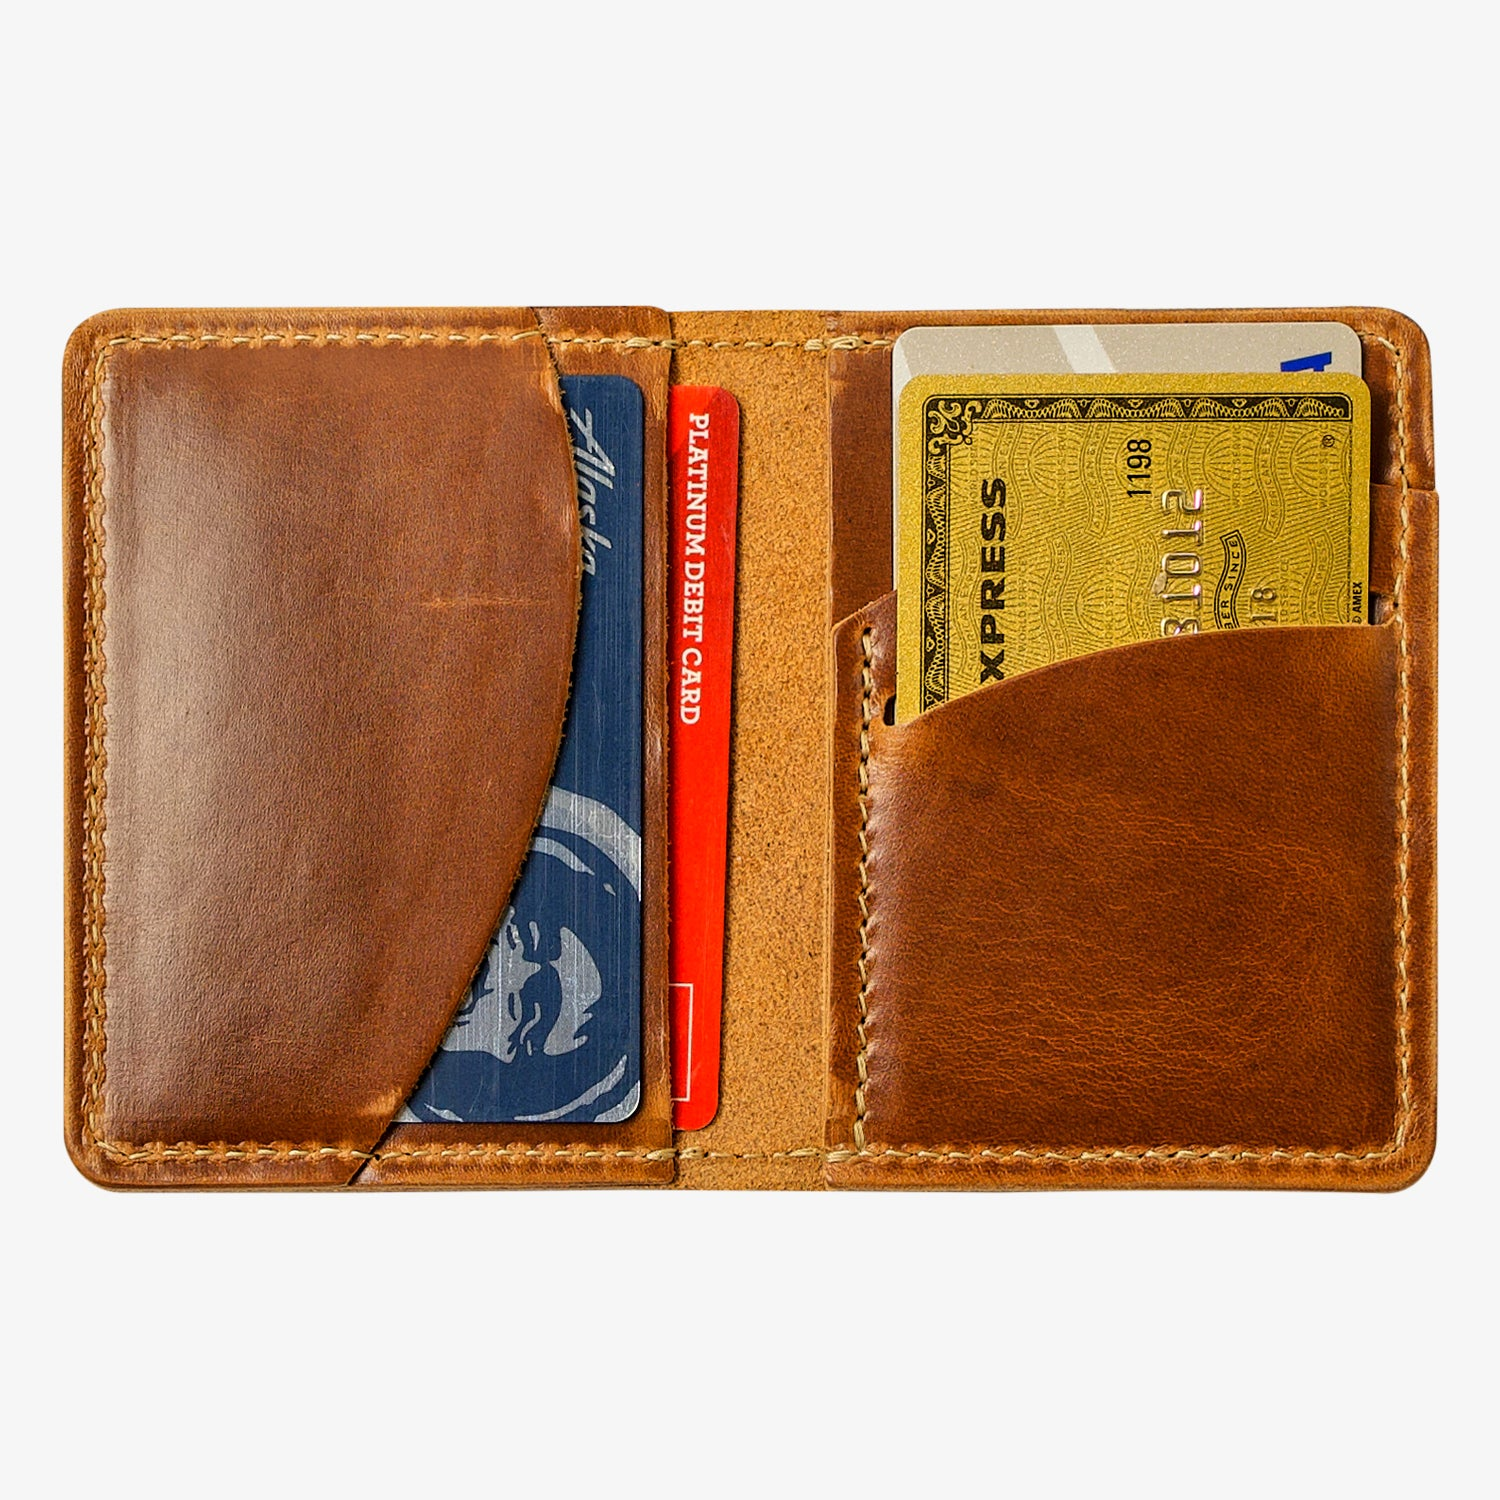 Olympia Leather Bifold Vertical Wallet - Moc